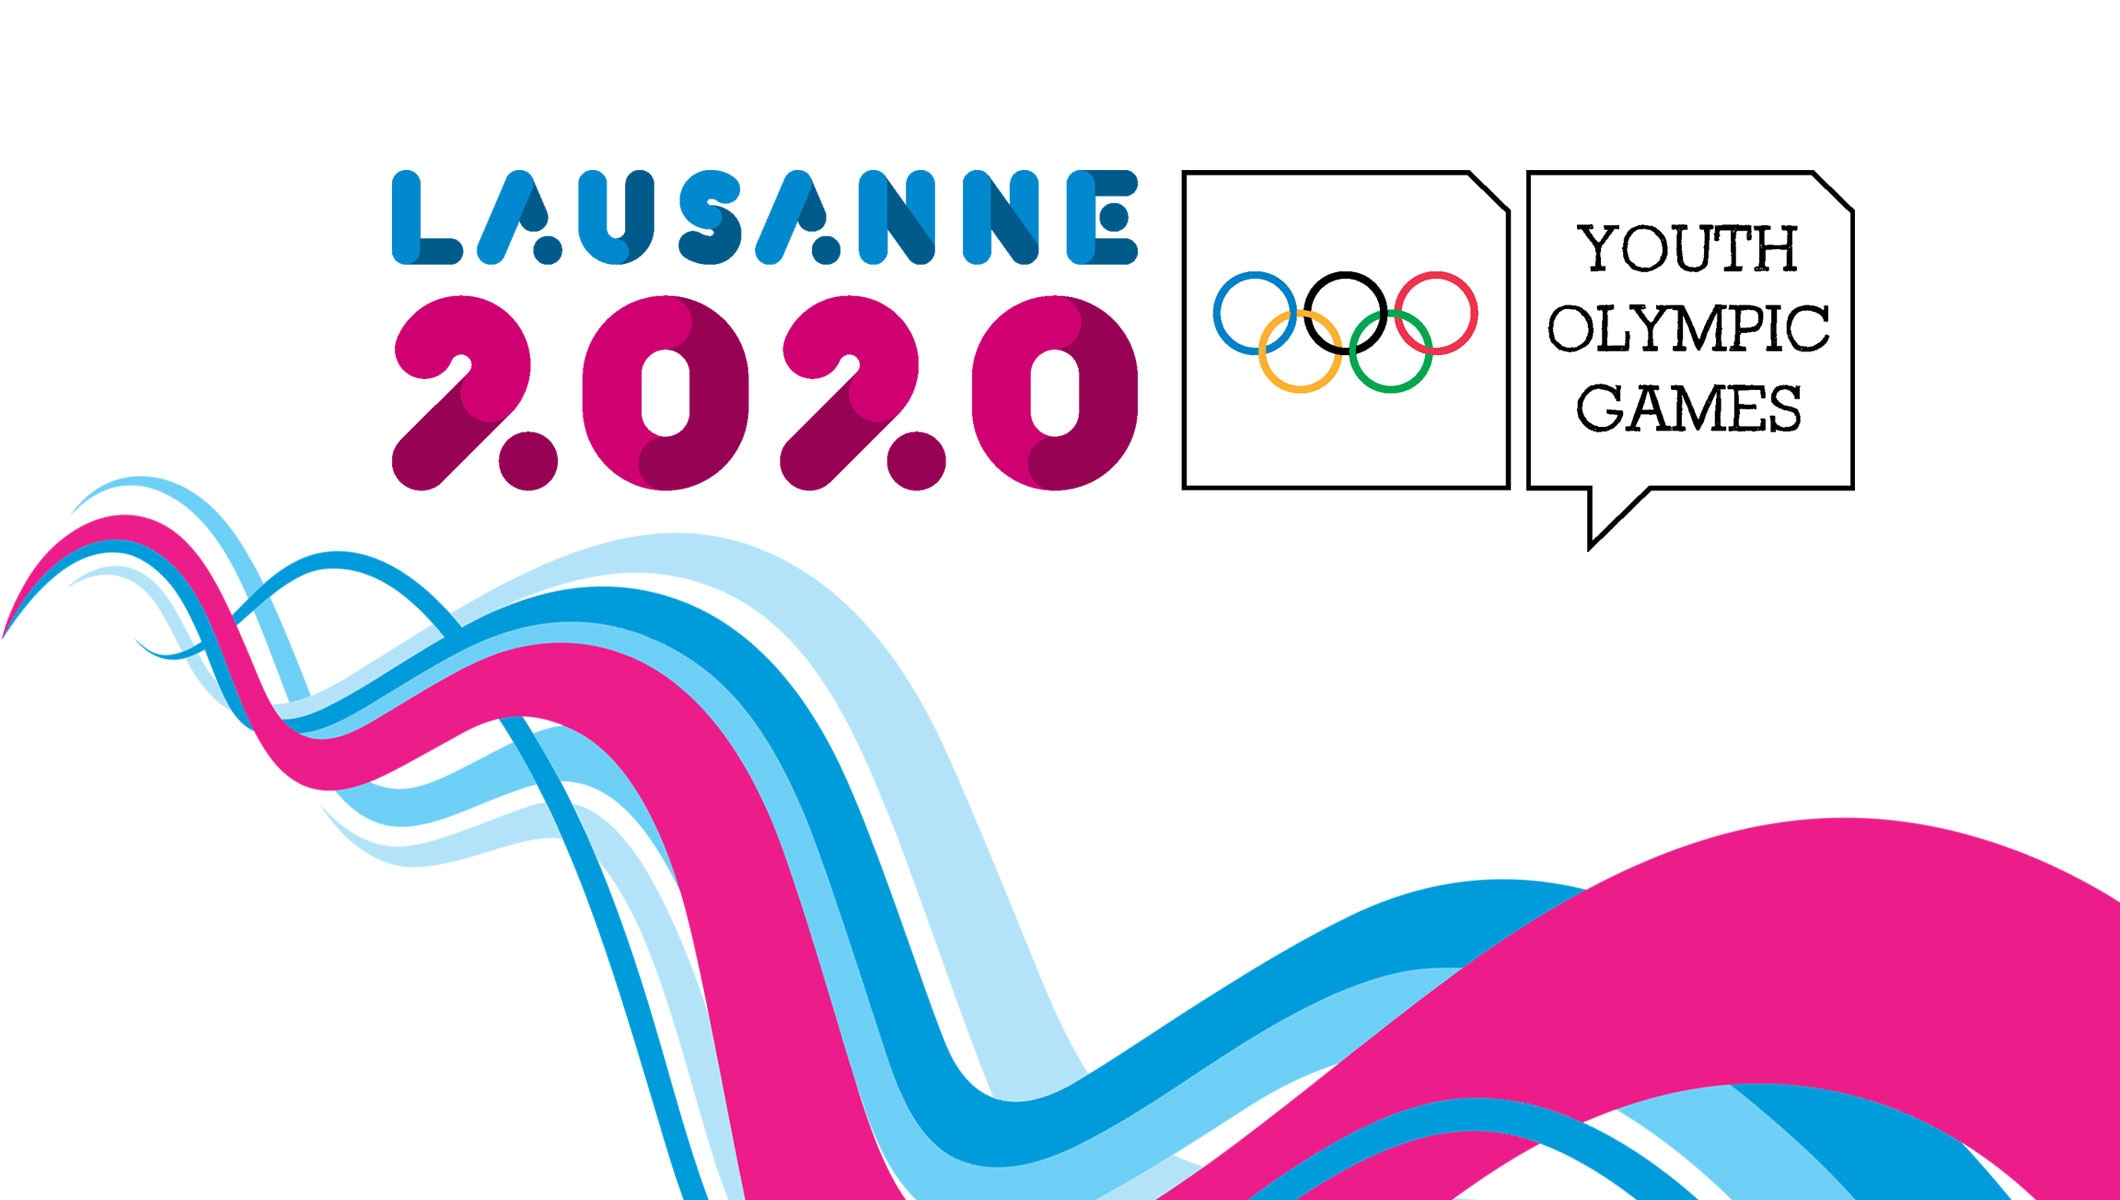 Lausanne 2020 Youth Olympic Games